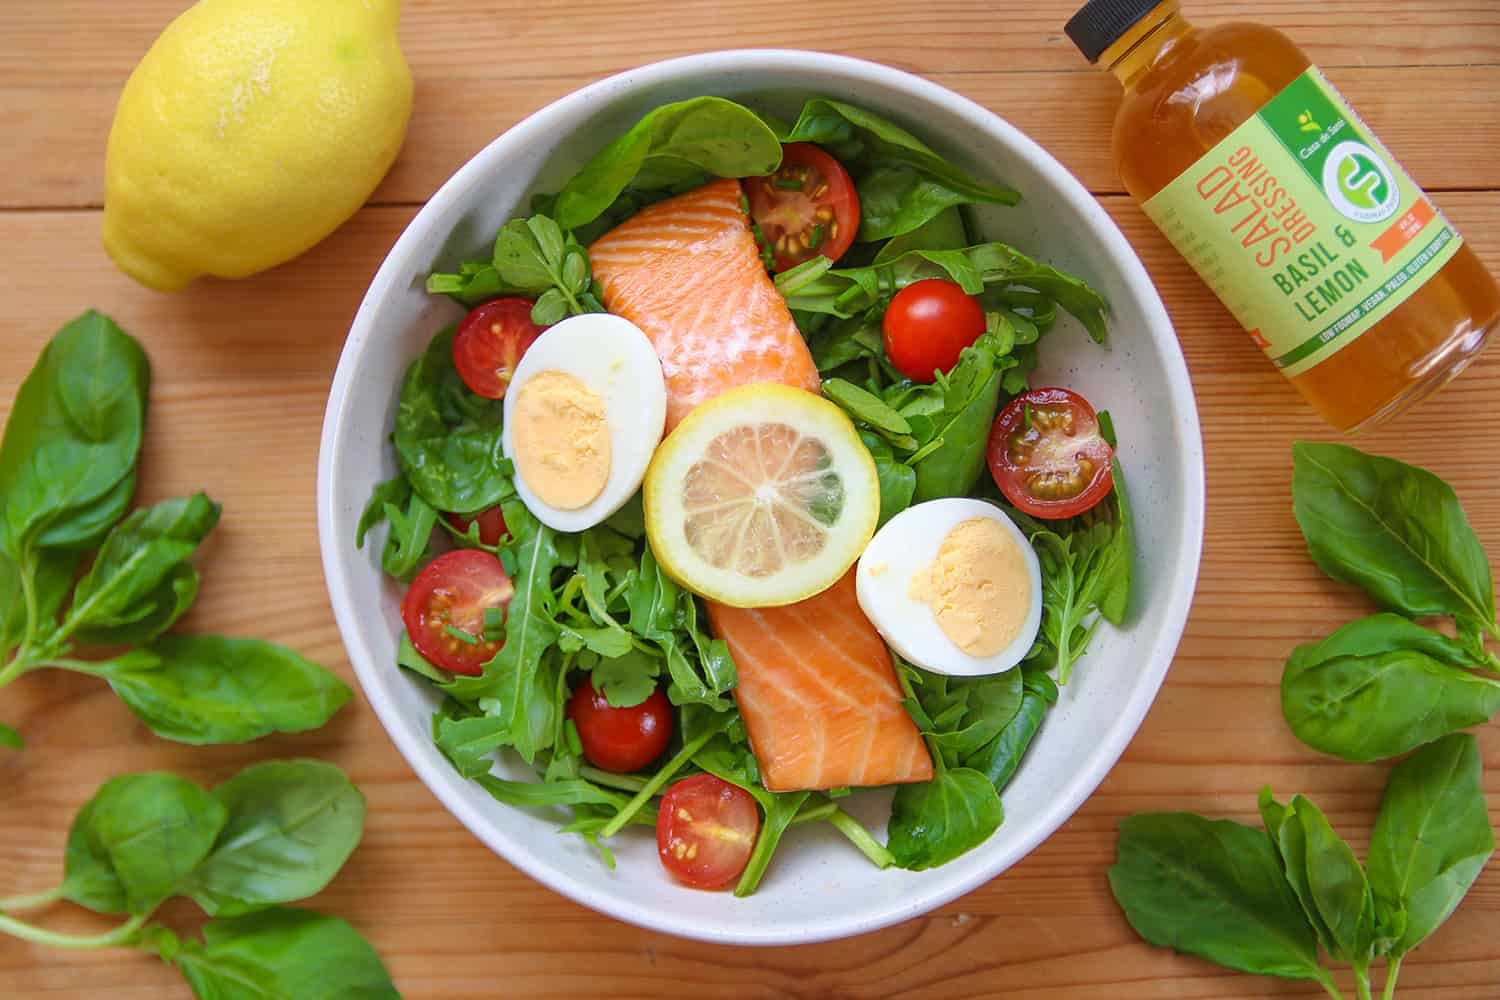 My Roasted Salmon and Egg Salad Recipe with Basil and Lemon Dressing (low FODMAP, dairy free)